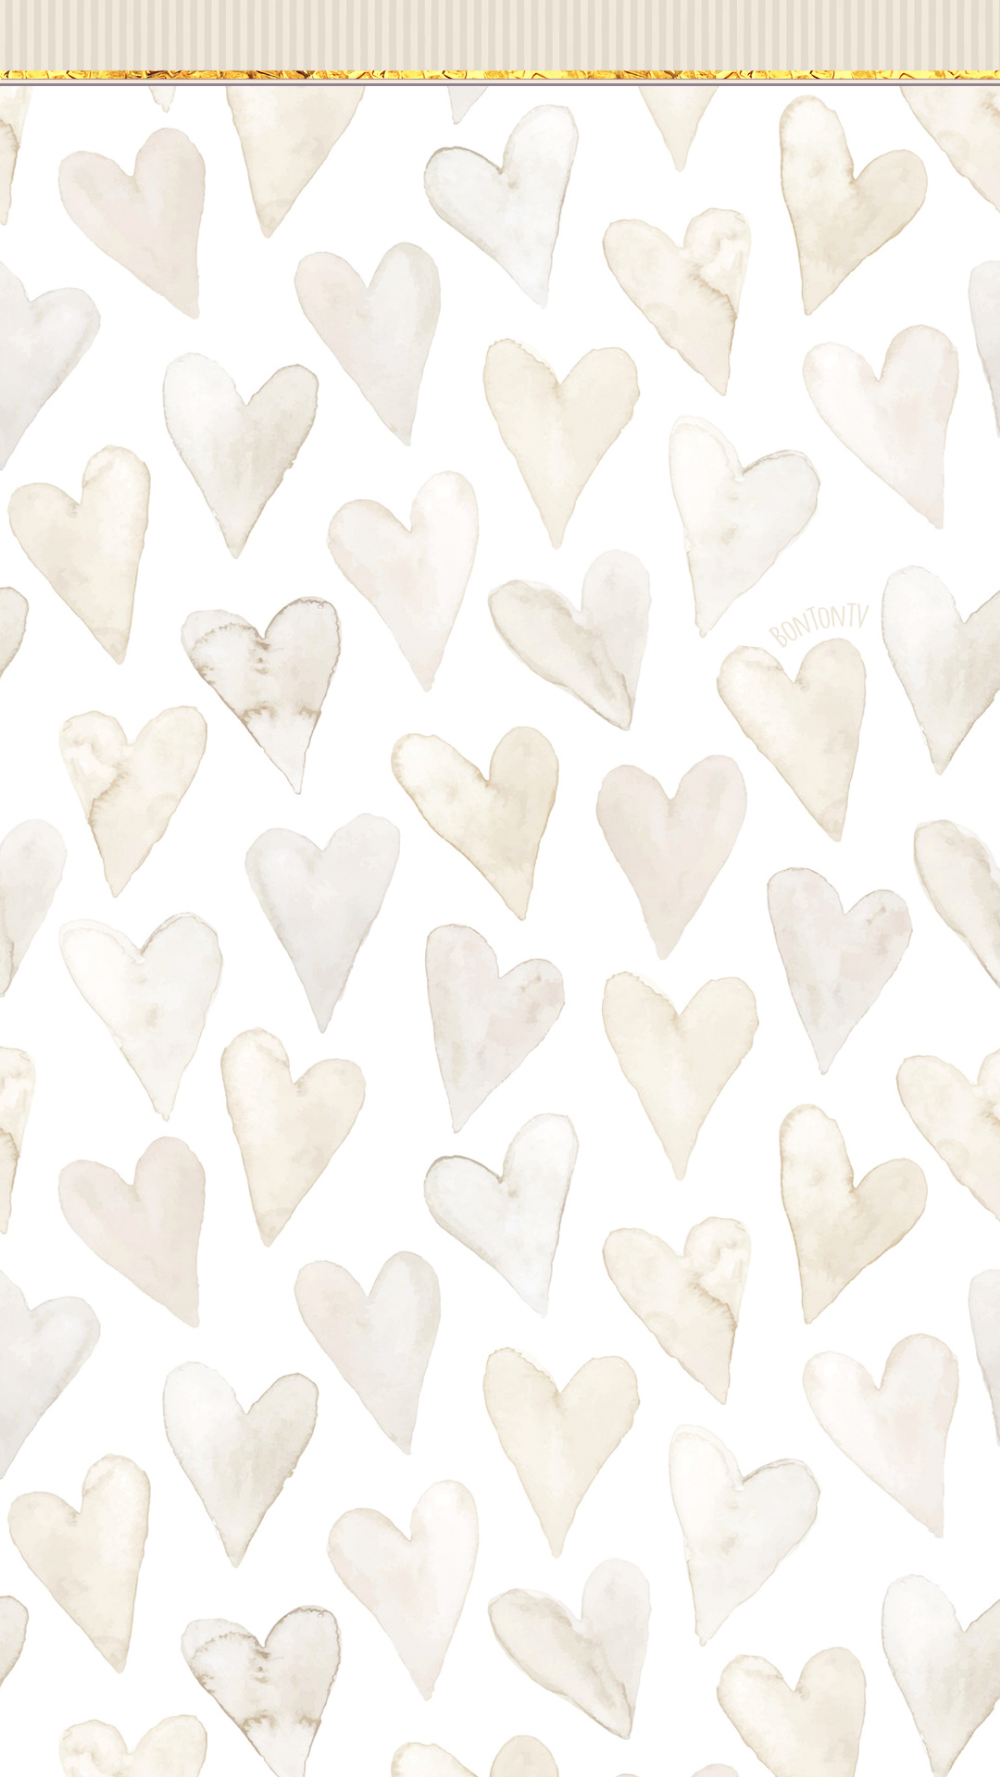 Phone Wallpapers Hd Beige Neutral Hearts Simplistic By Bonton Tv Free Backgrounds 1080x192 Simplistic Wallpaper Cute Patterns Wallpaper Neutral Wallpaper